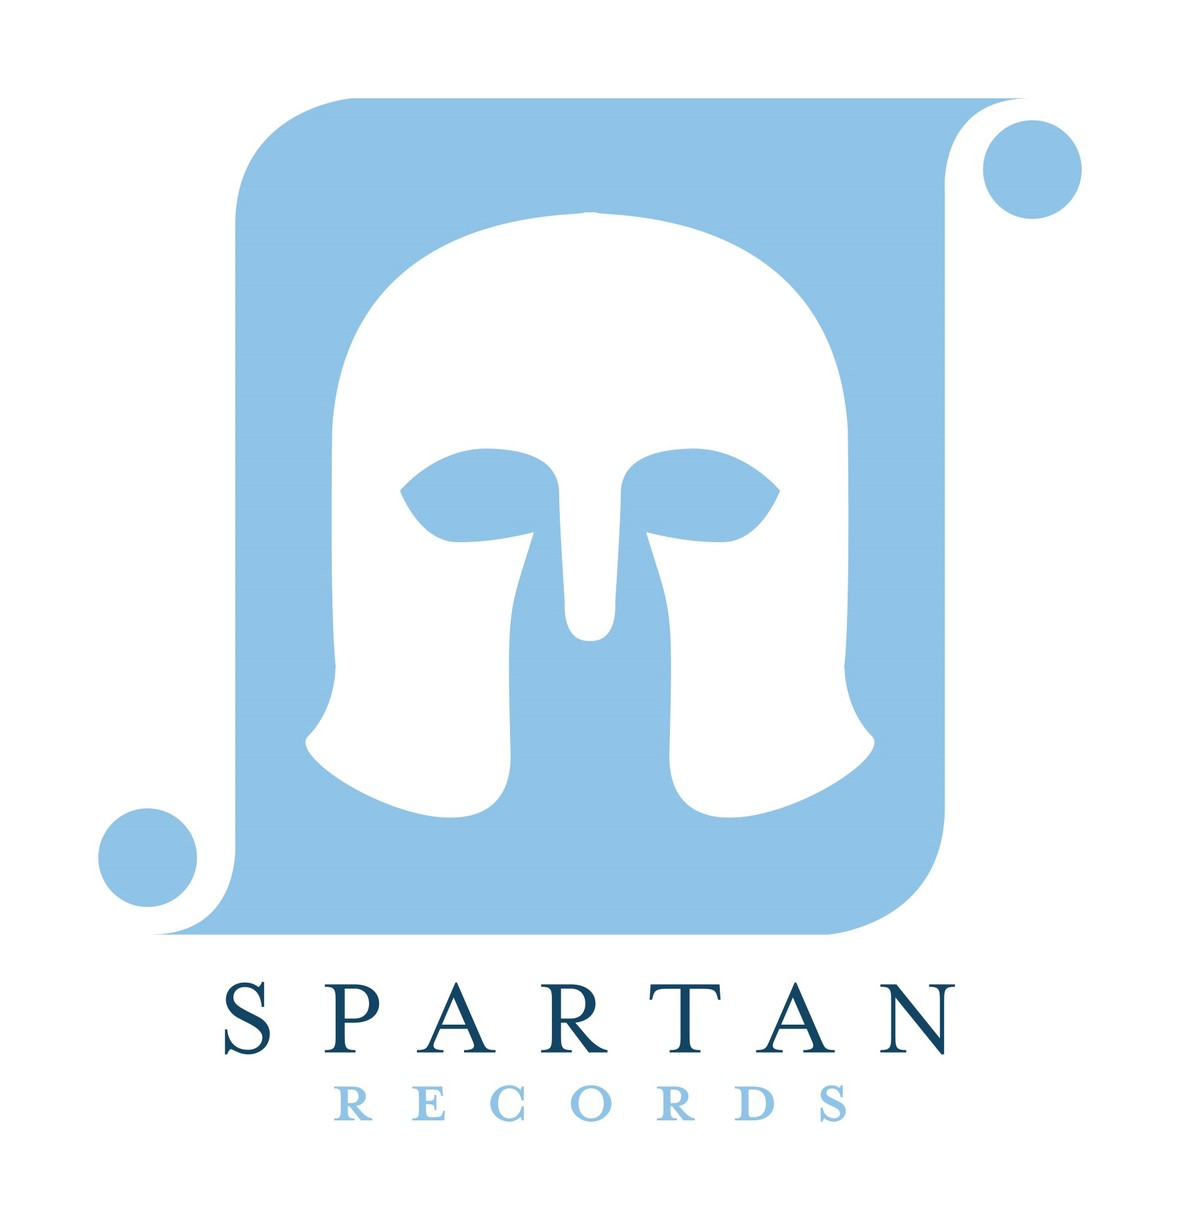 spartan records logo june 2015 use this one